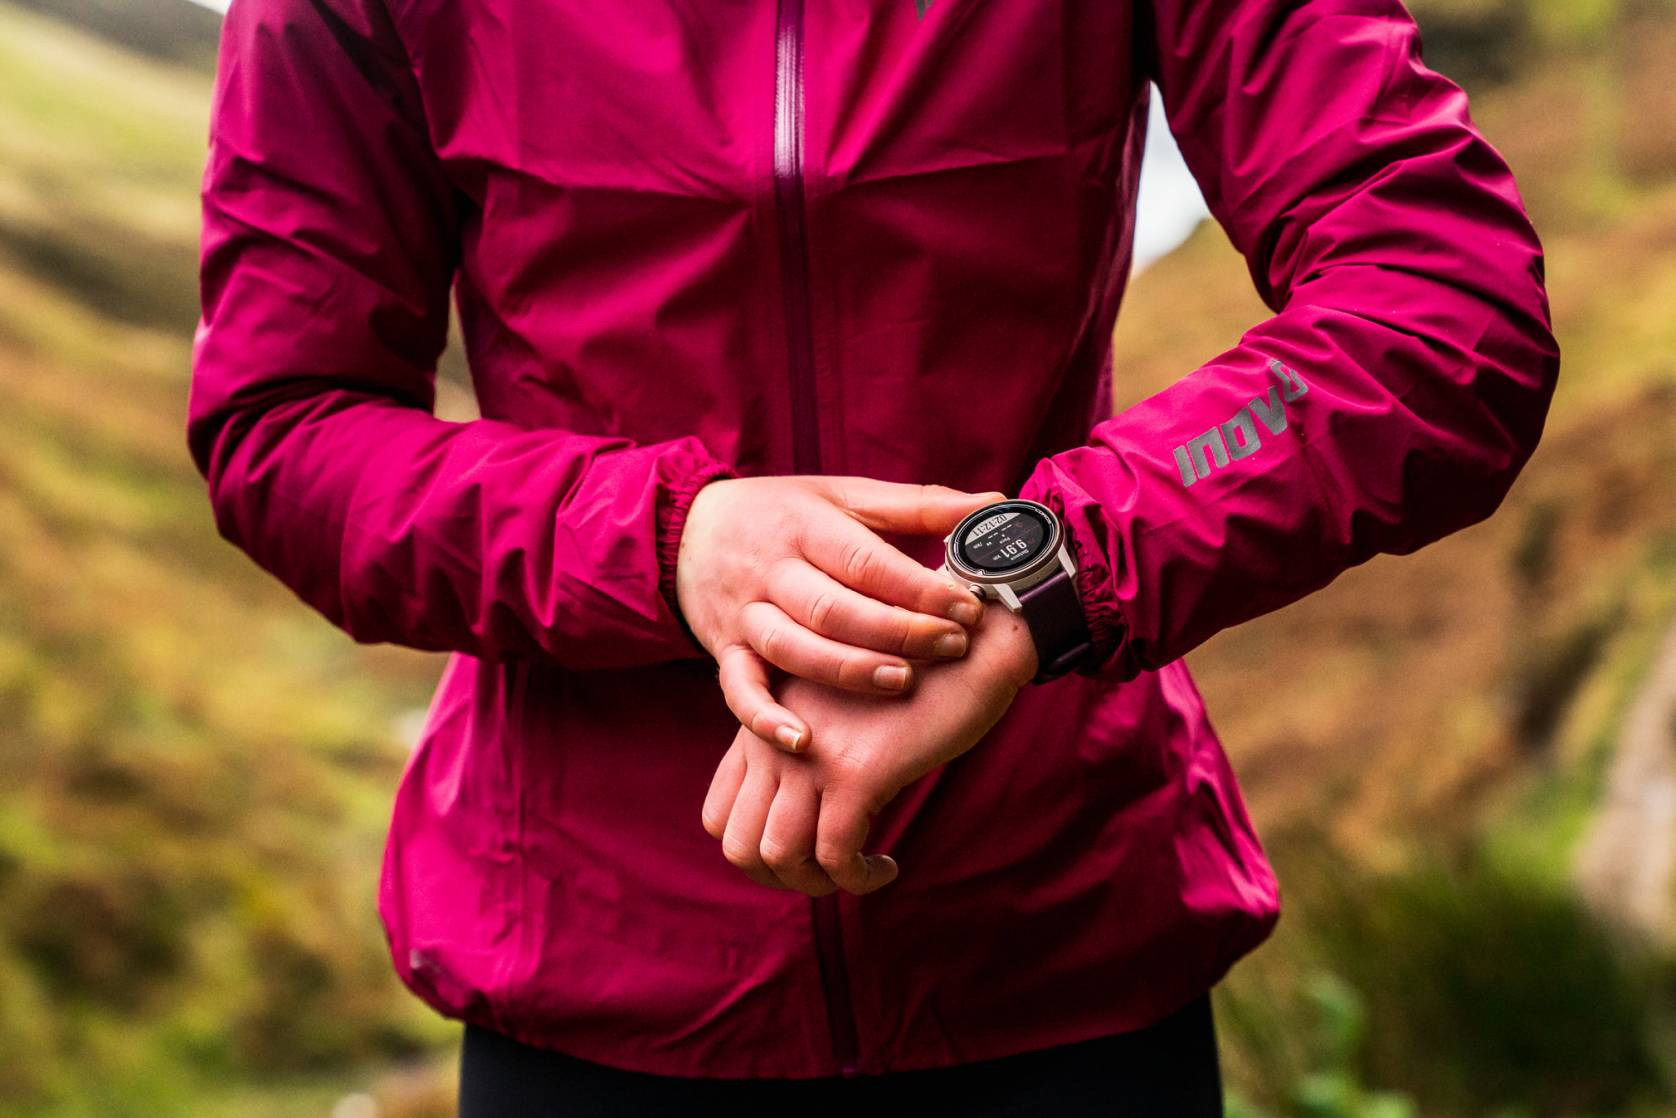 runner wearing magenta inov-8 jacket and COROS watch